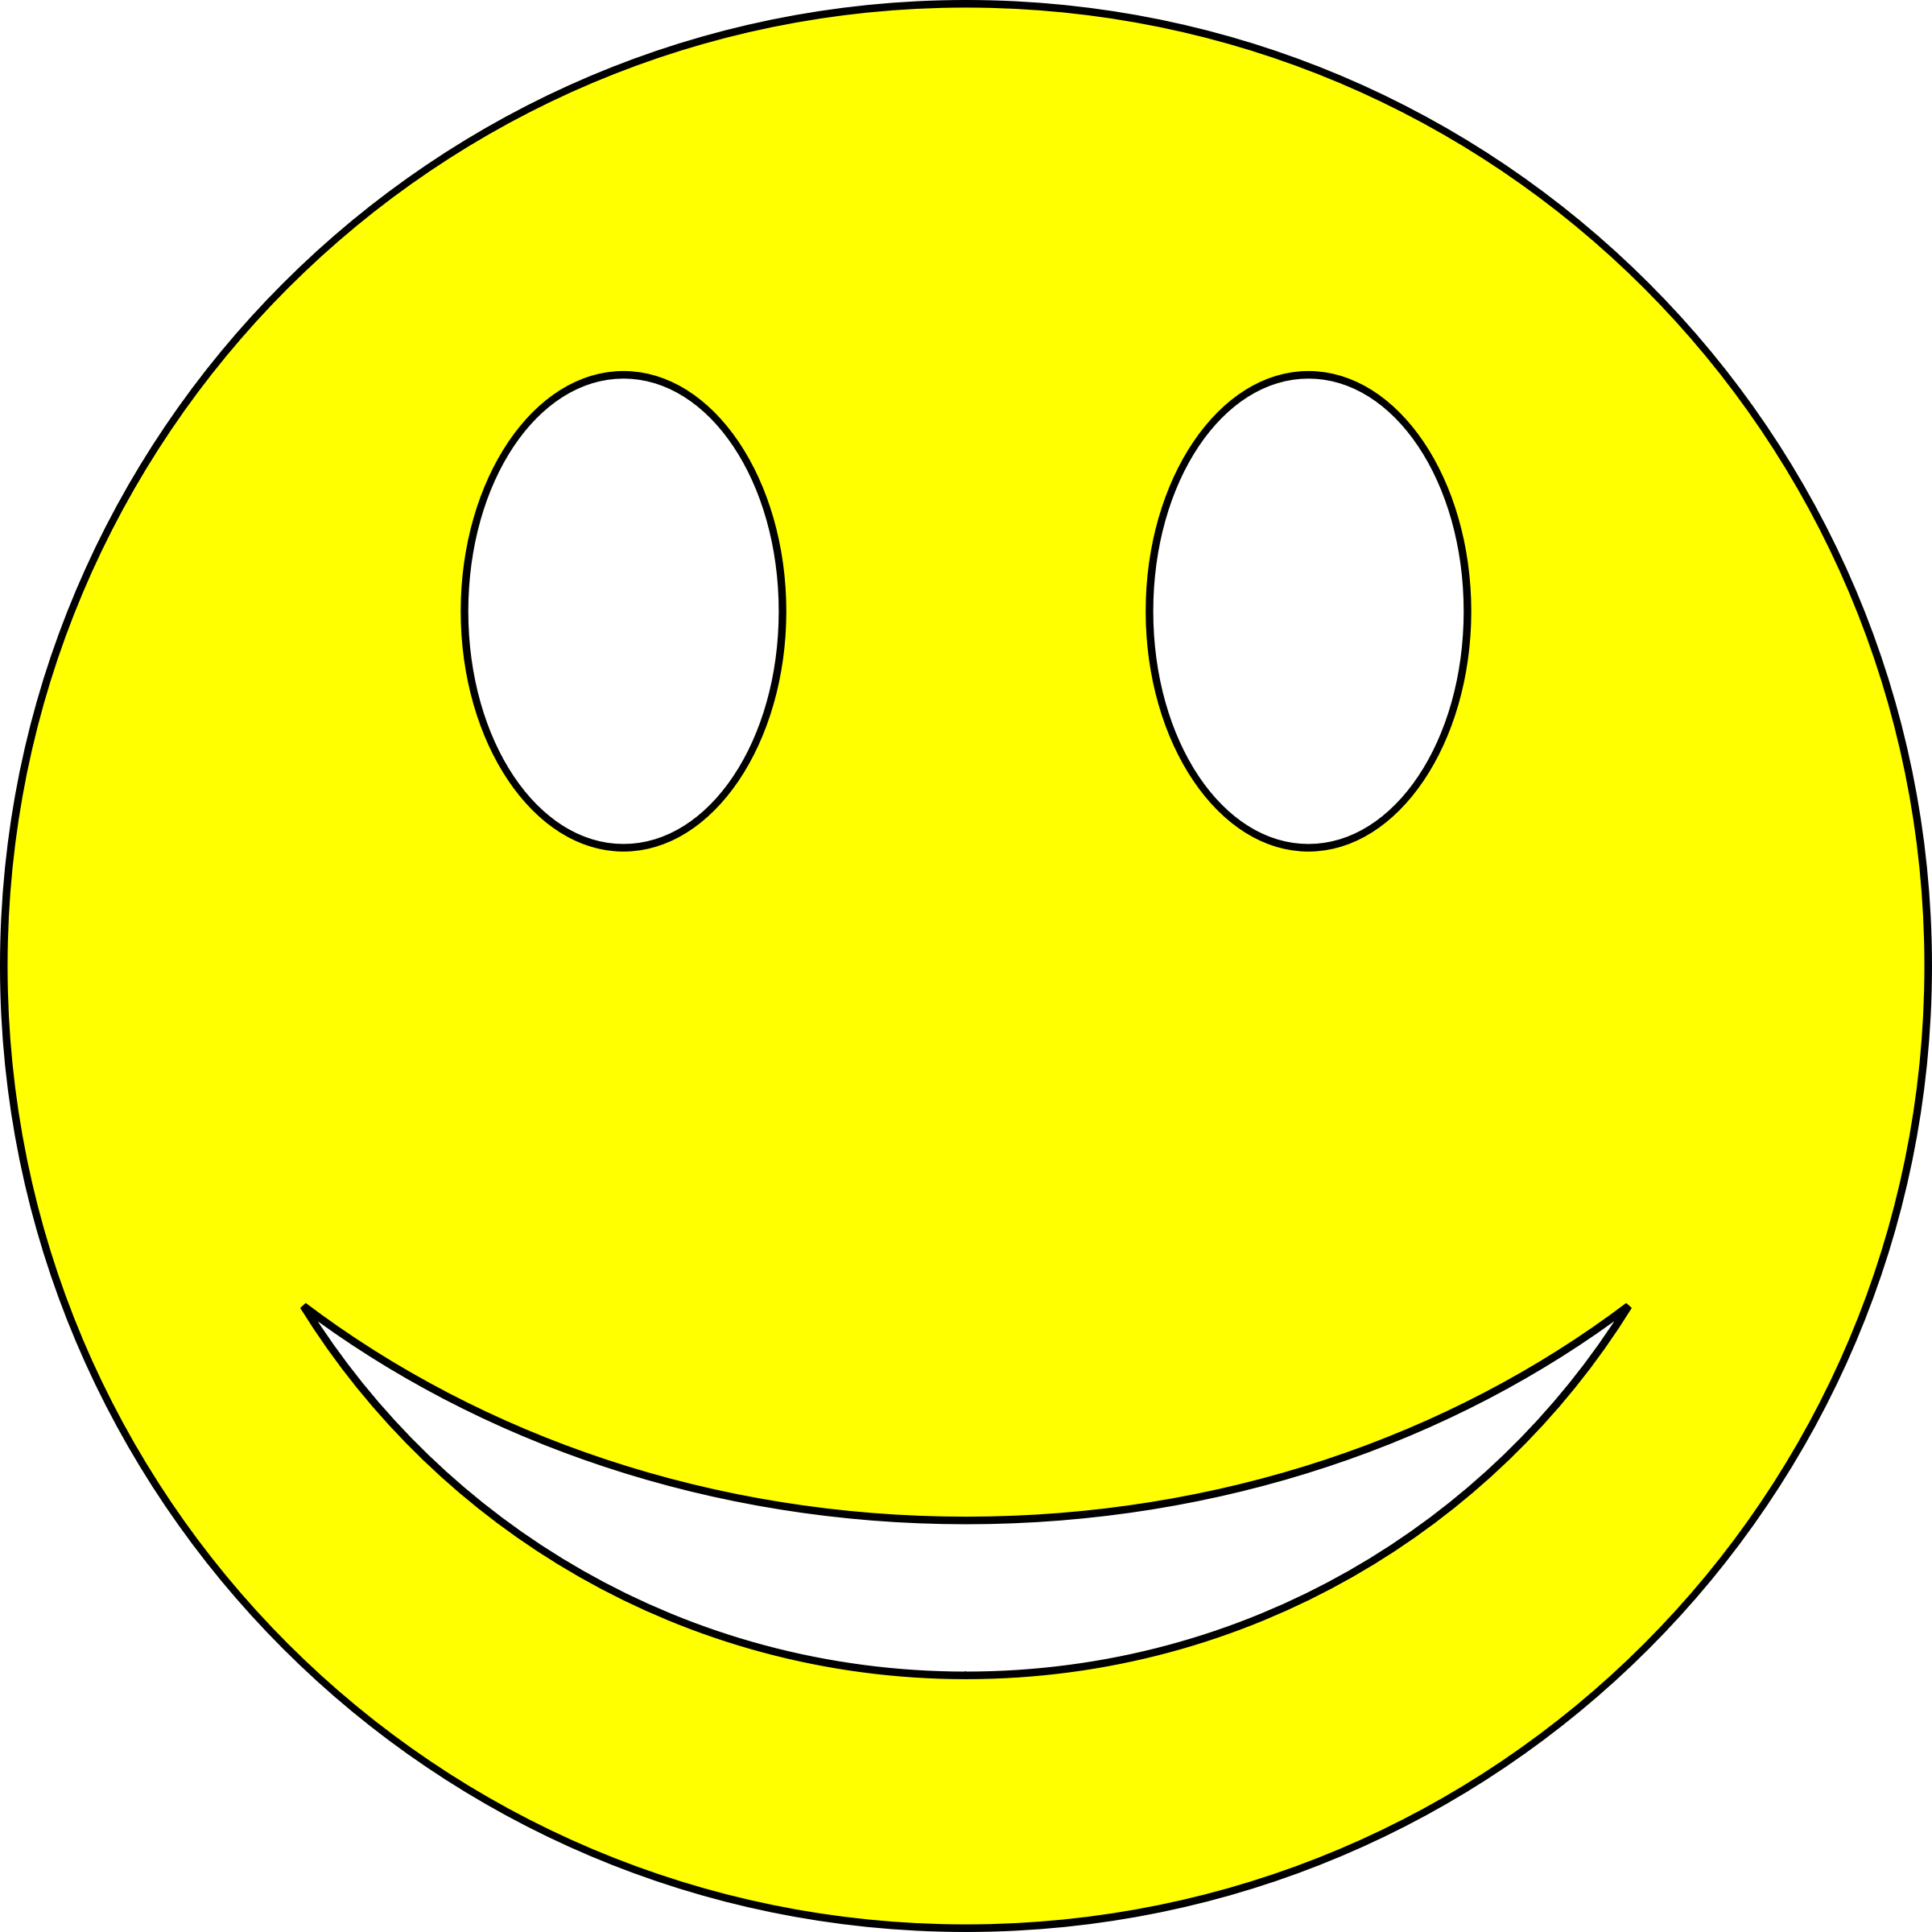 Study clipart study guide. Smiley yellow big image